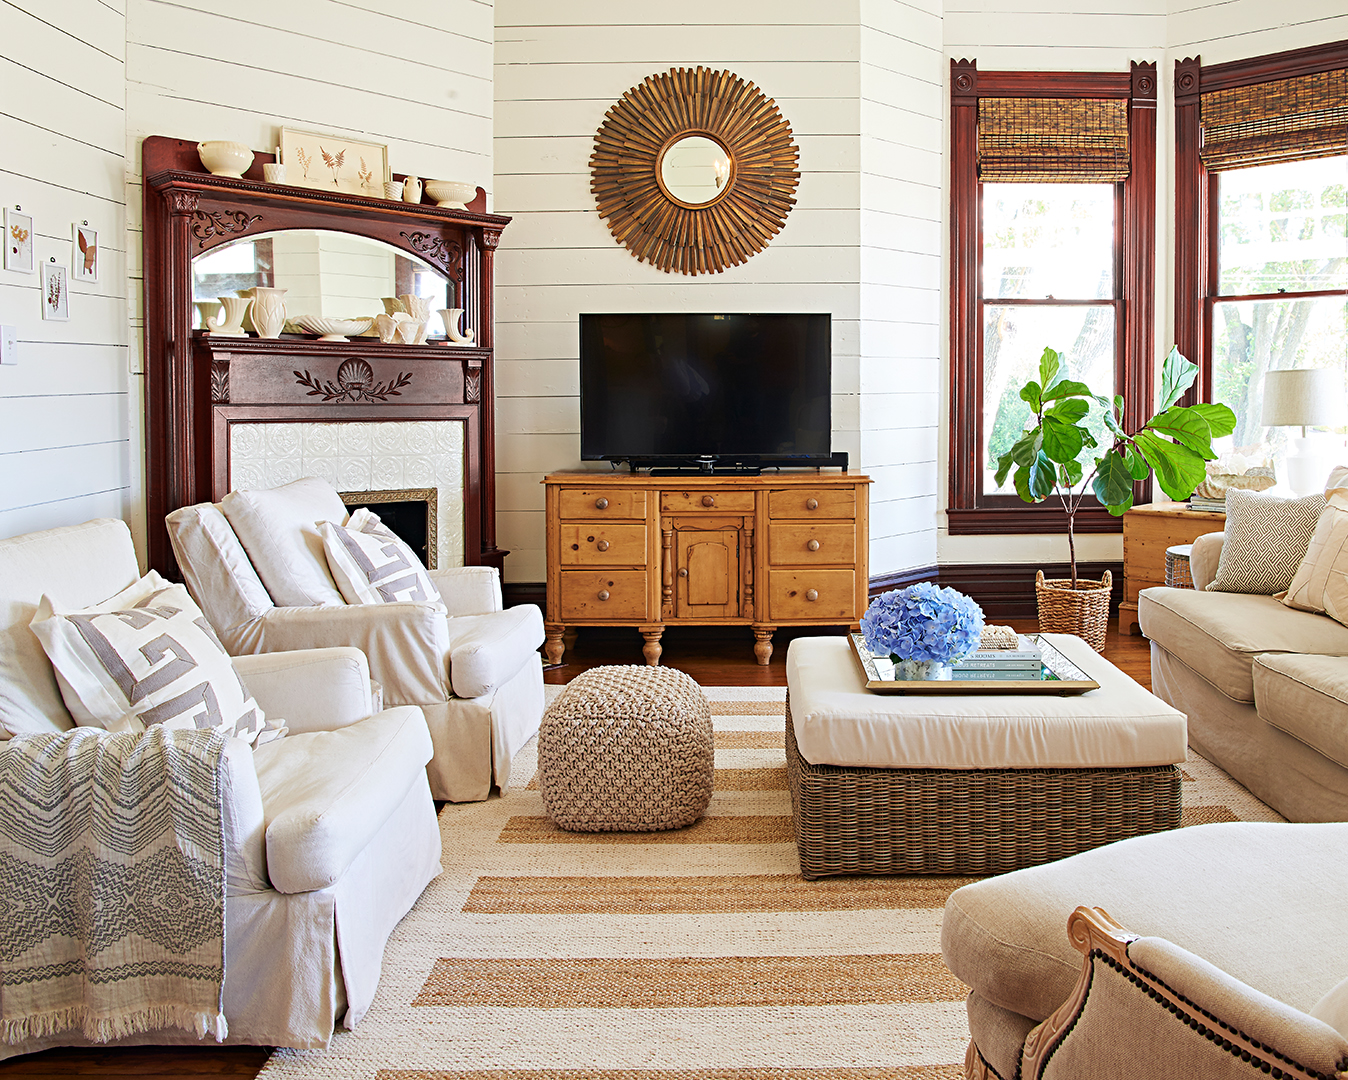 living room seating with fireplace and wicker ottoman